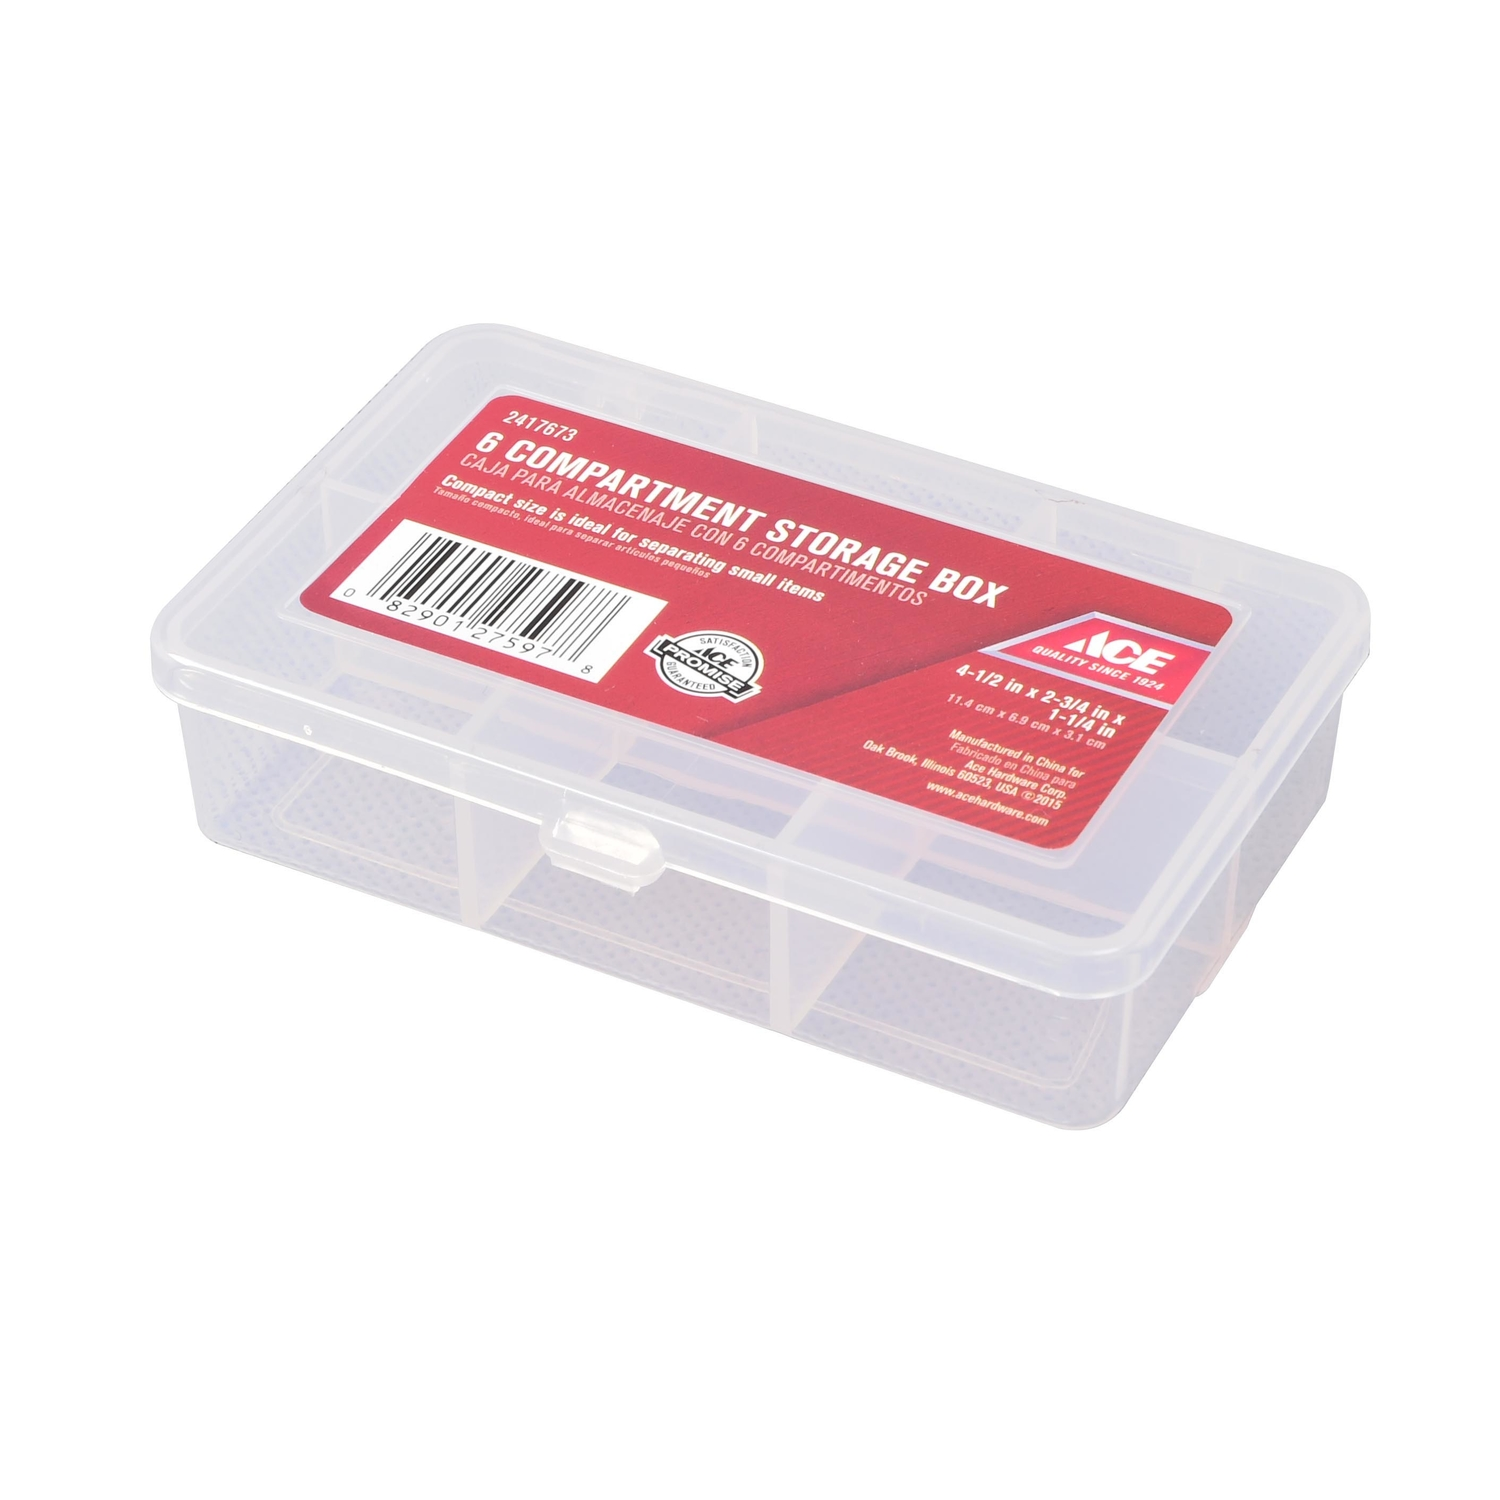 Ace  4-1/2 in. L x 2-3/4 in. W x 1-1/4 in. H Tool Storage Bin  Plastic  6 compartment Clear